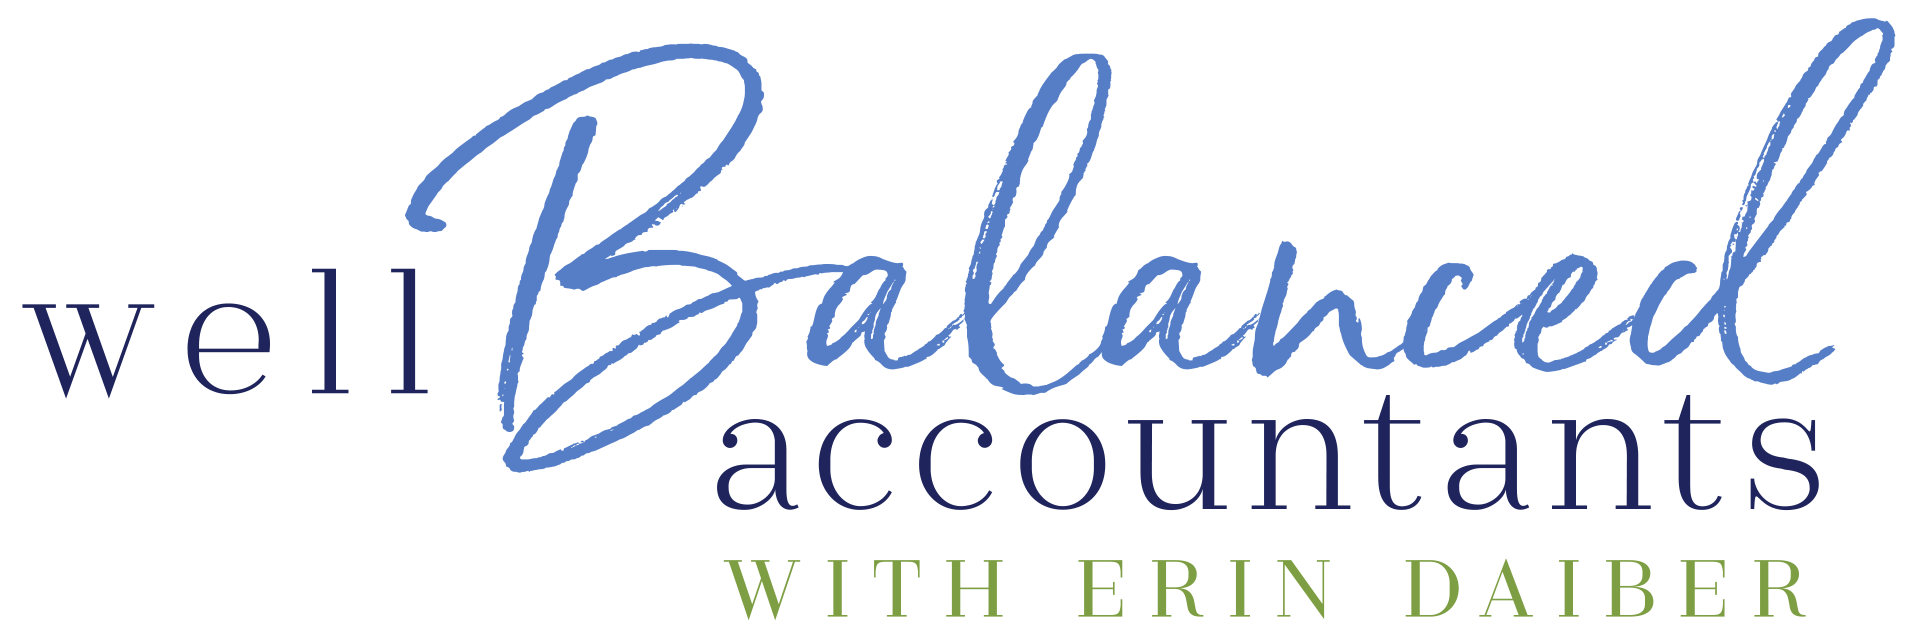 Well Balanced Accountants with Erin Daiber